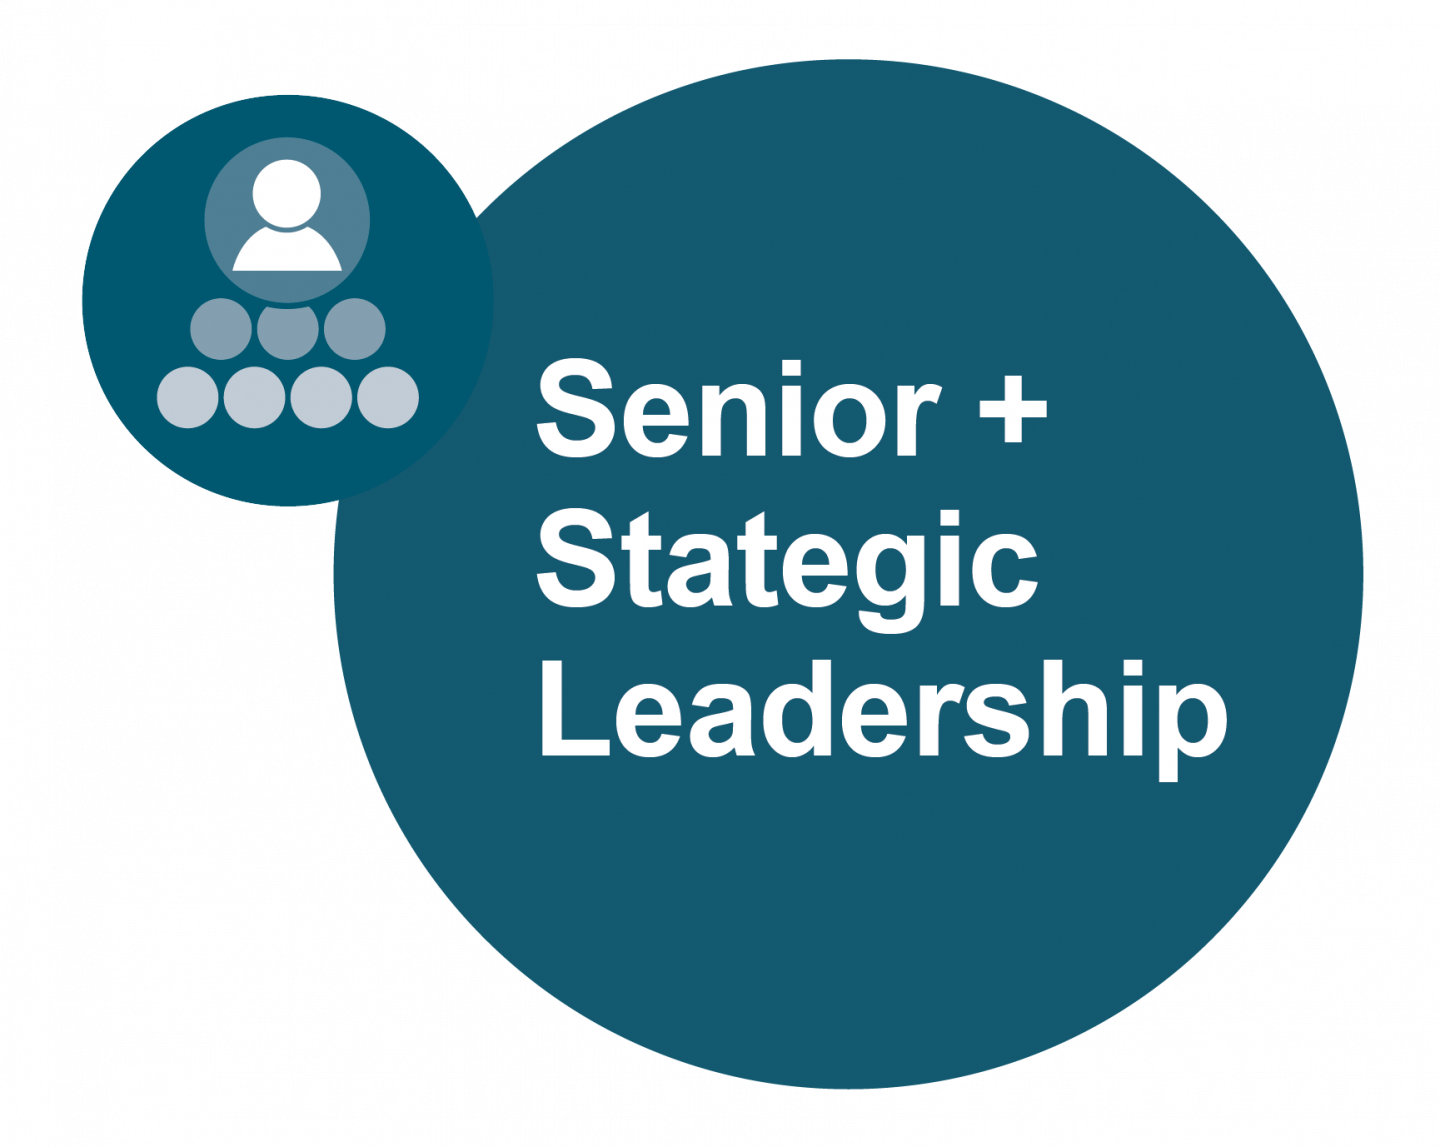 circle senior + strategic leadership